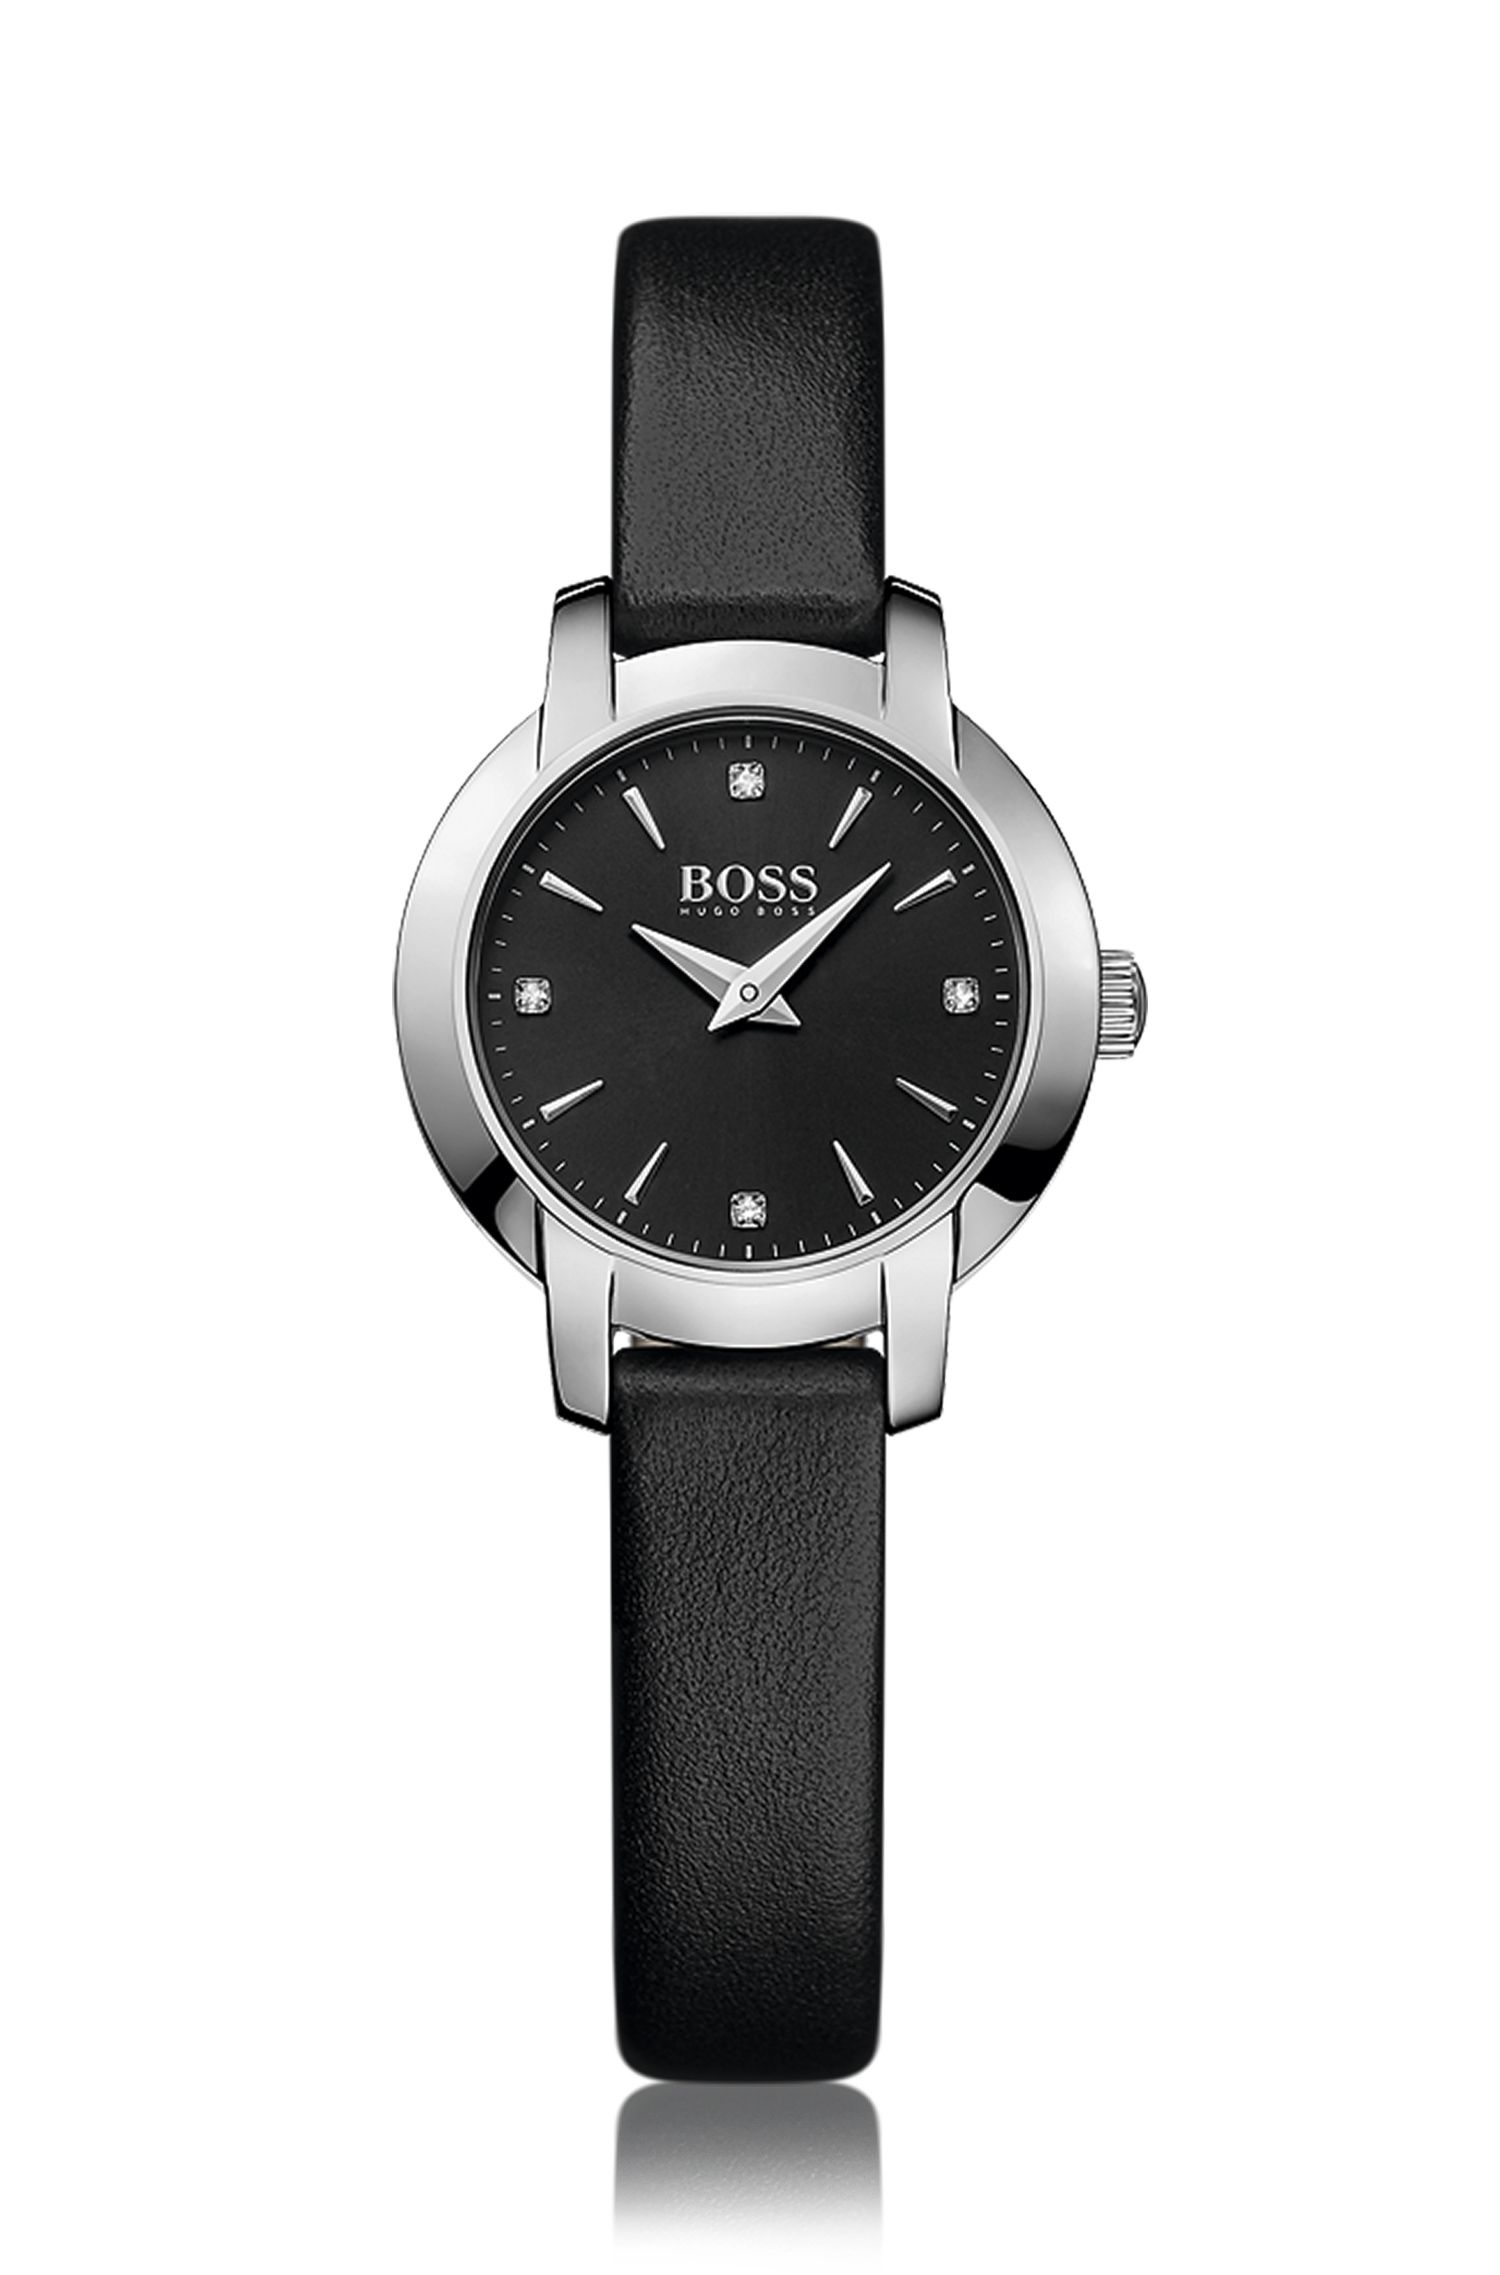 Stainless-steel watch with black sunray dial and leather strap